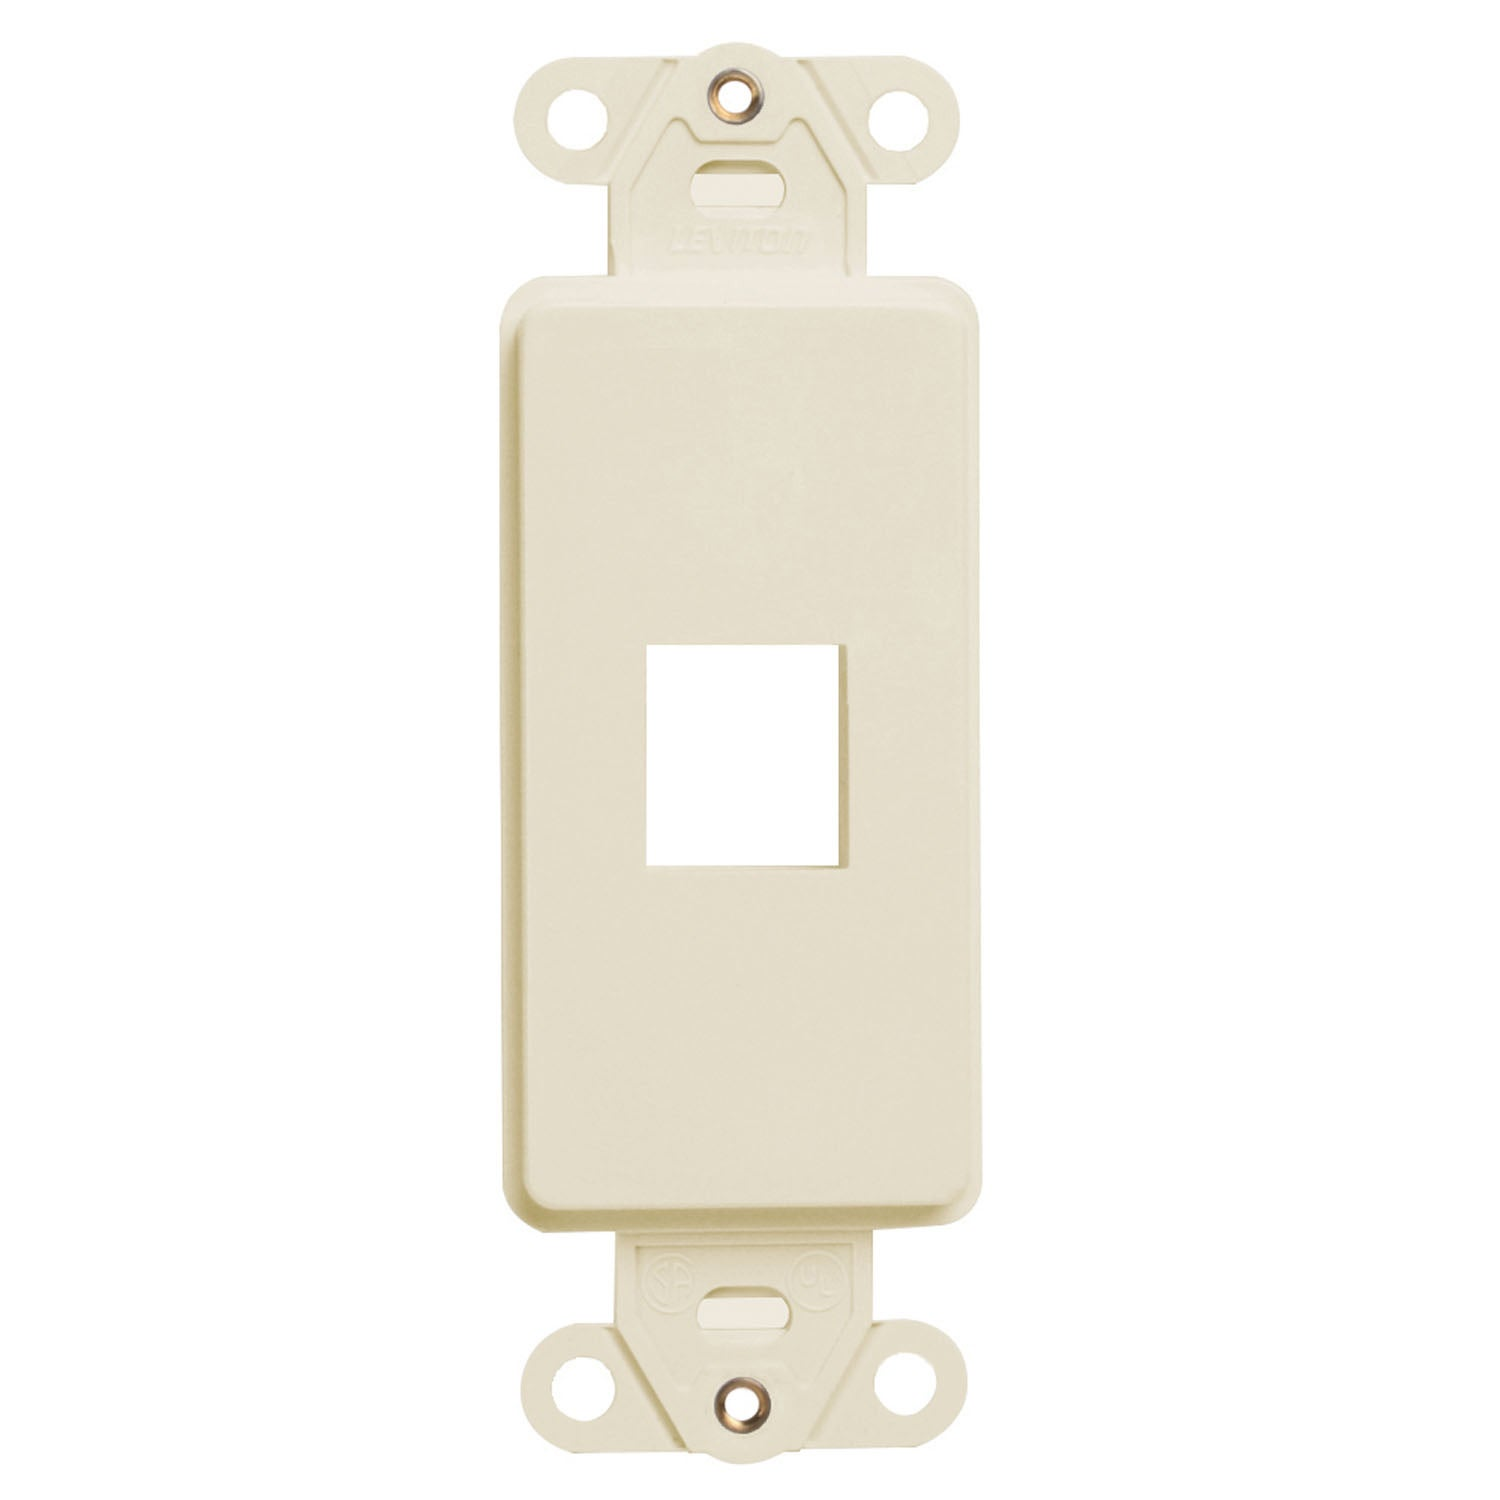 Leviton 006-41641-00T 1-Port Light Almond QuickPort Decora  Insert (Switches&outlet covers)